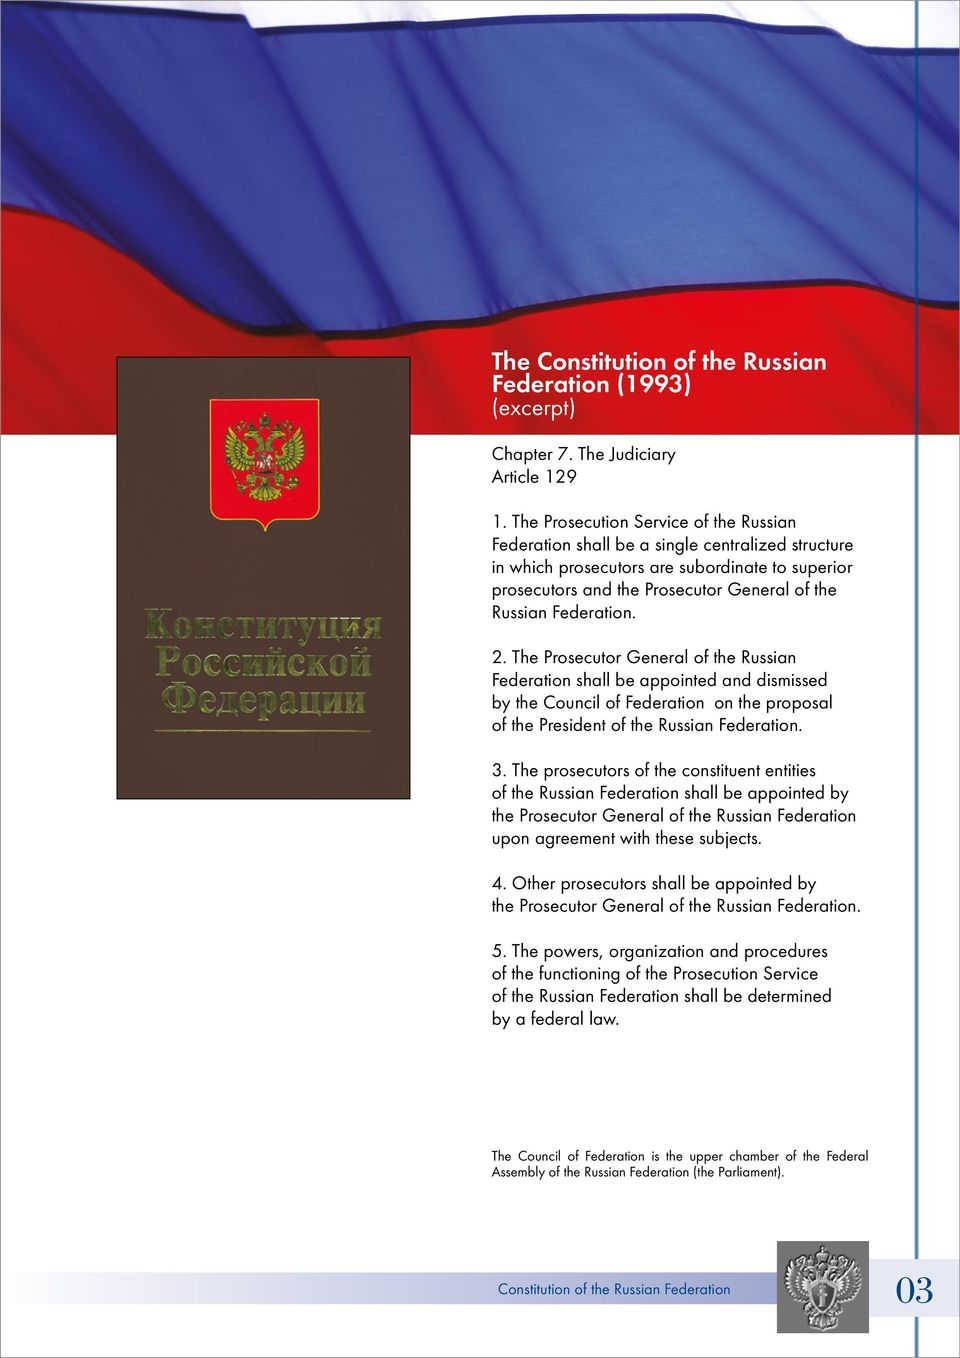 Federation. 2. The Prosecutor General of the Russian Federation shall be appointed and dismissed by the Council of Federation on the proposal of the President of the Russian Federation. 3.